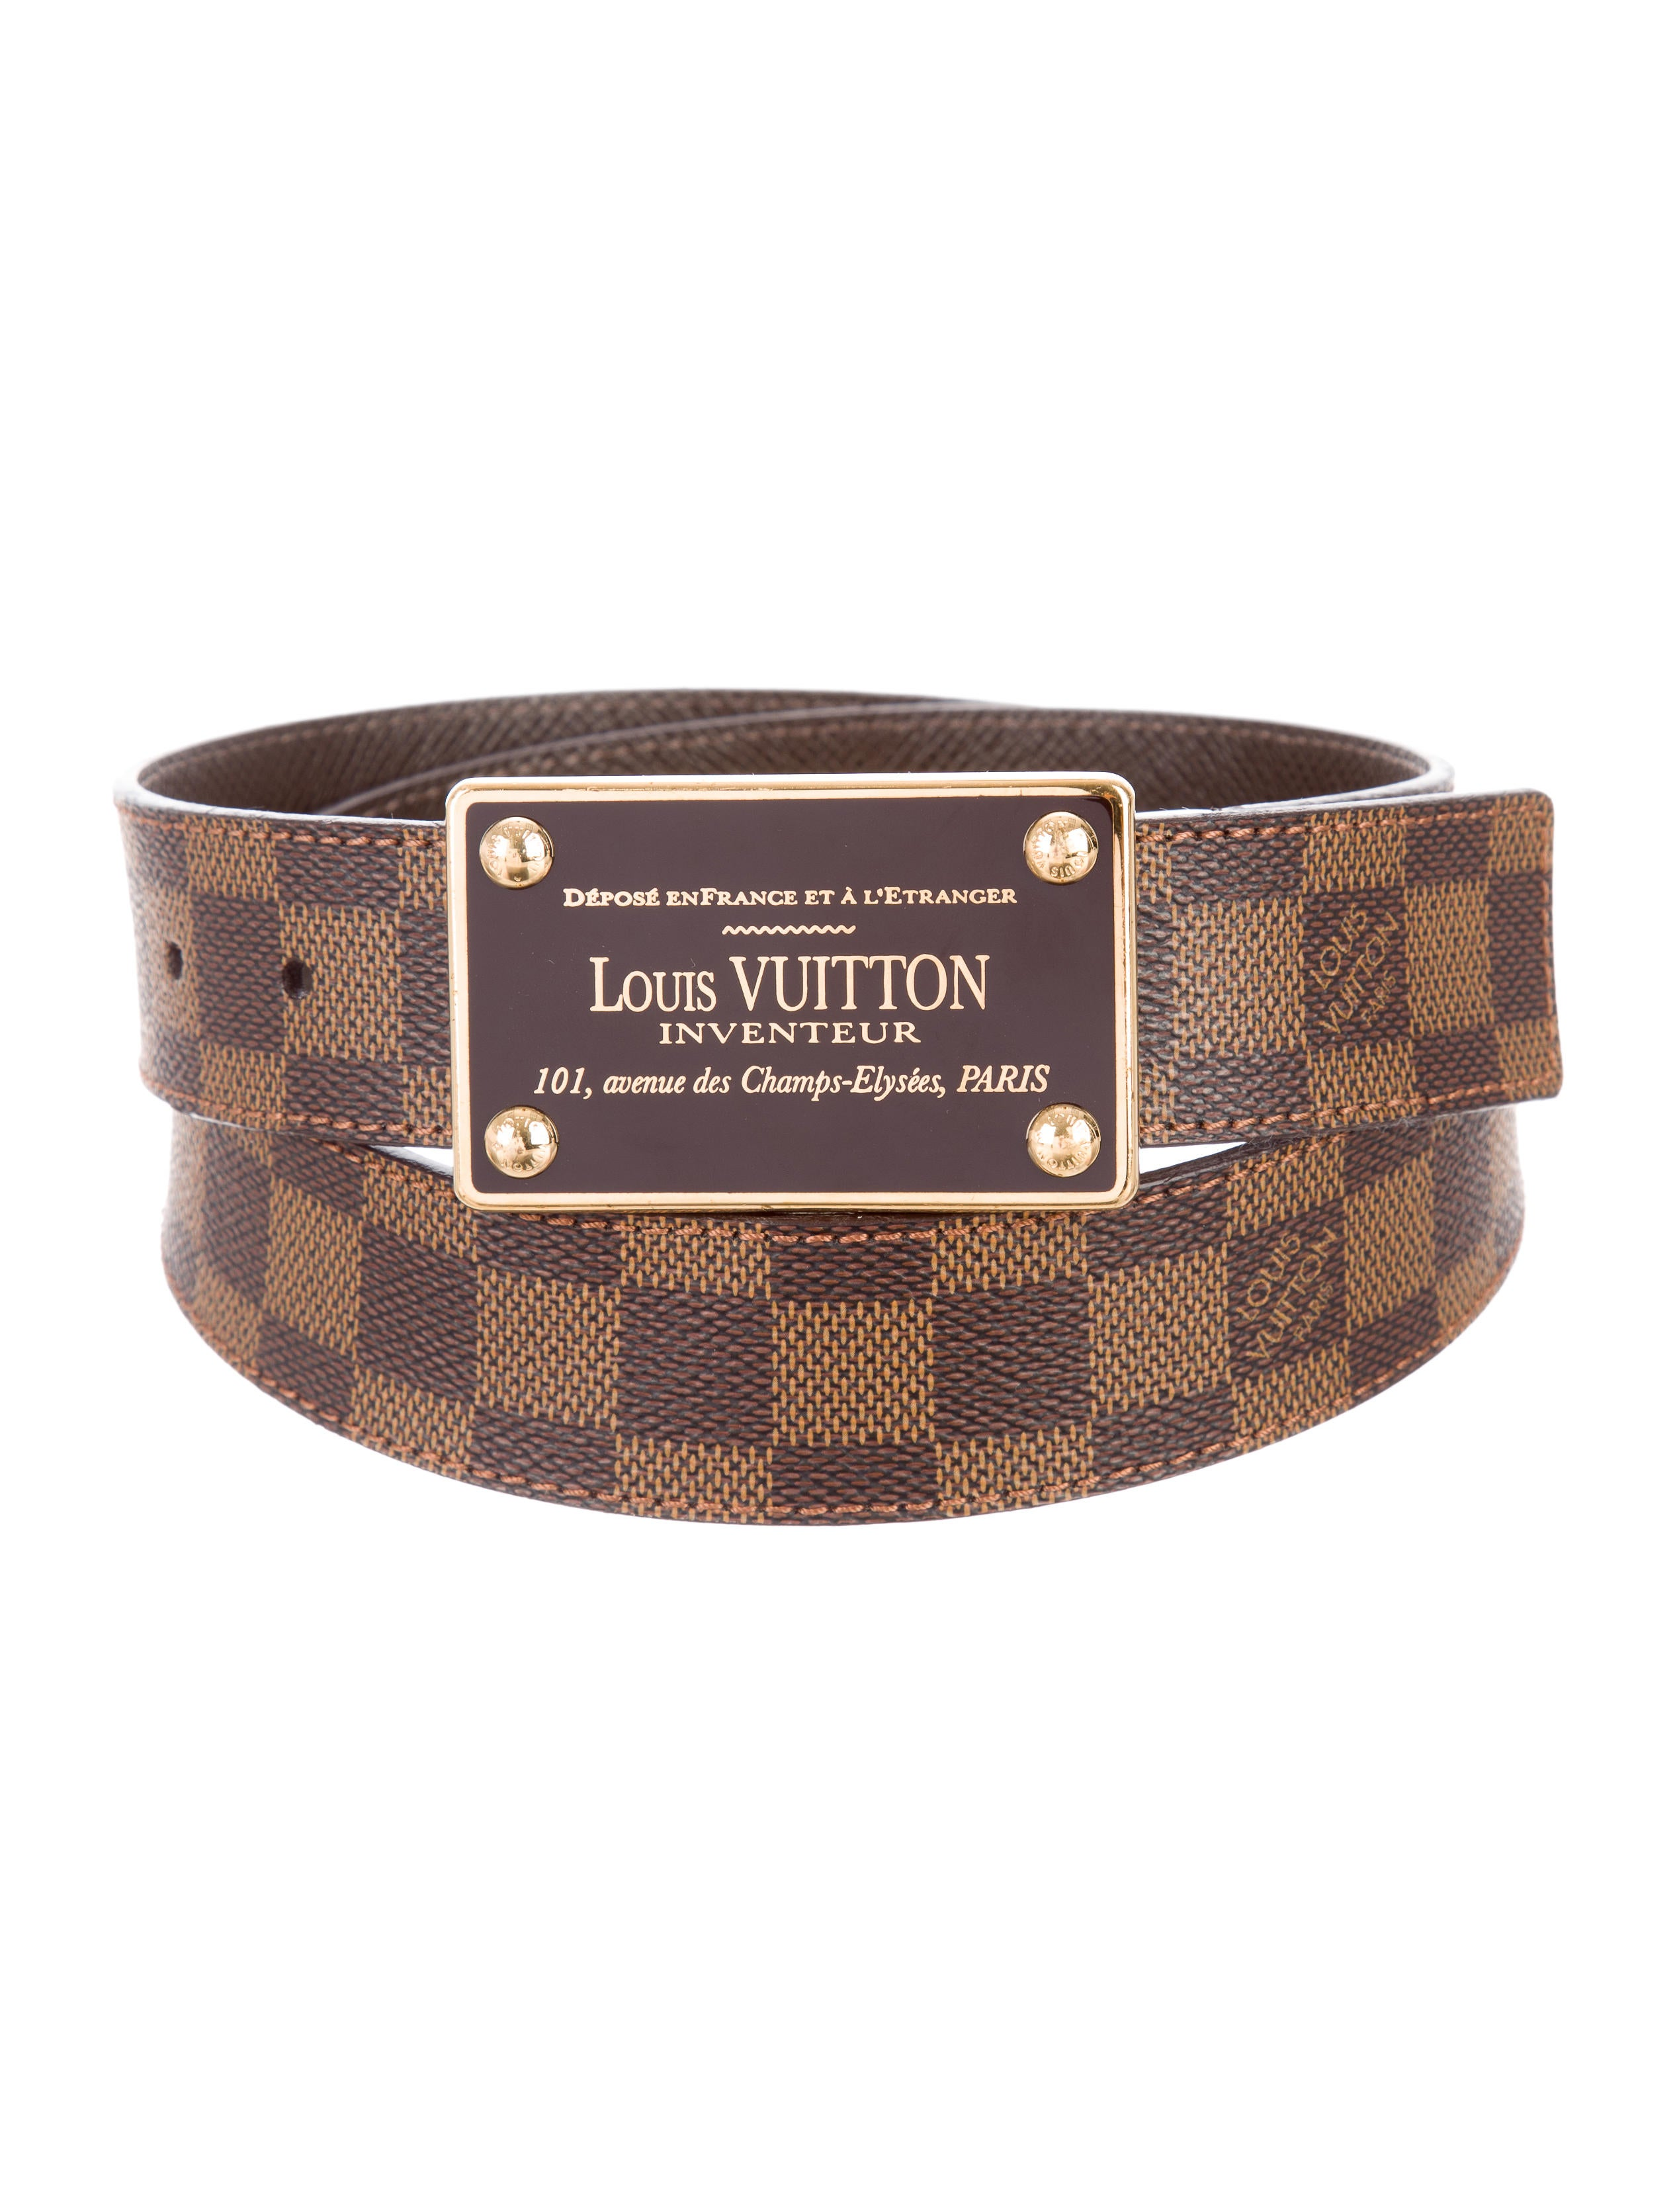 cae874a0a00d Louis Vuitton Damier Ebene LV Inventeur 35MM Reversible Belt ...